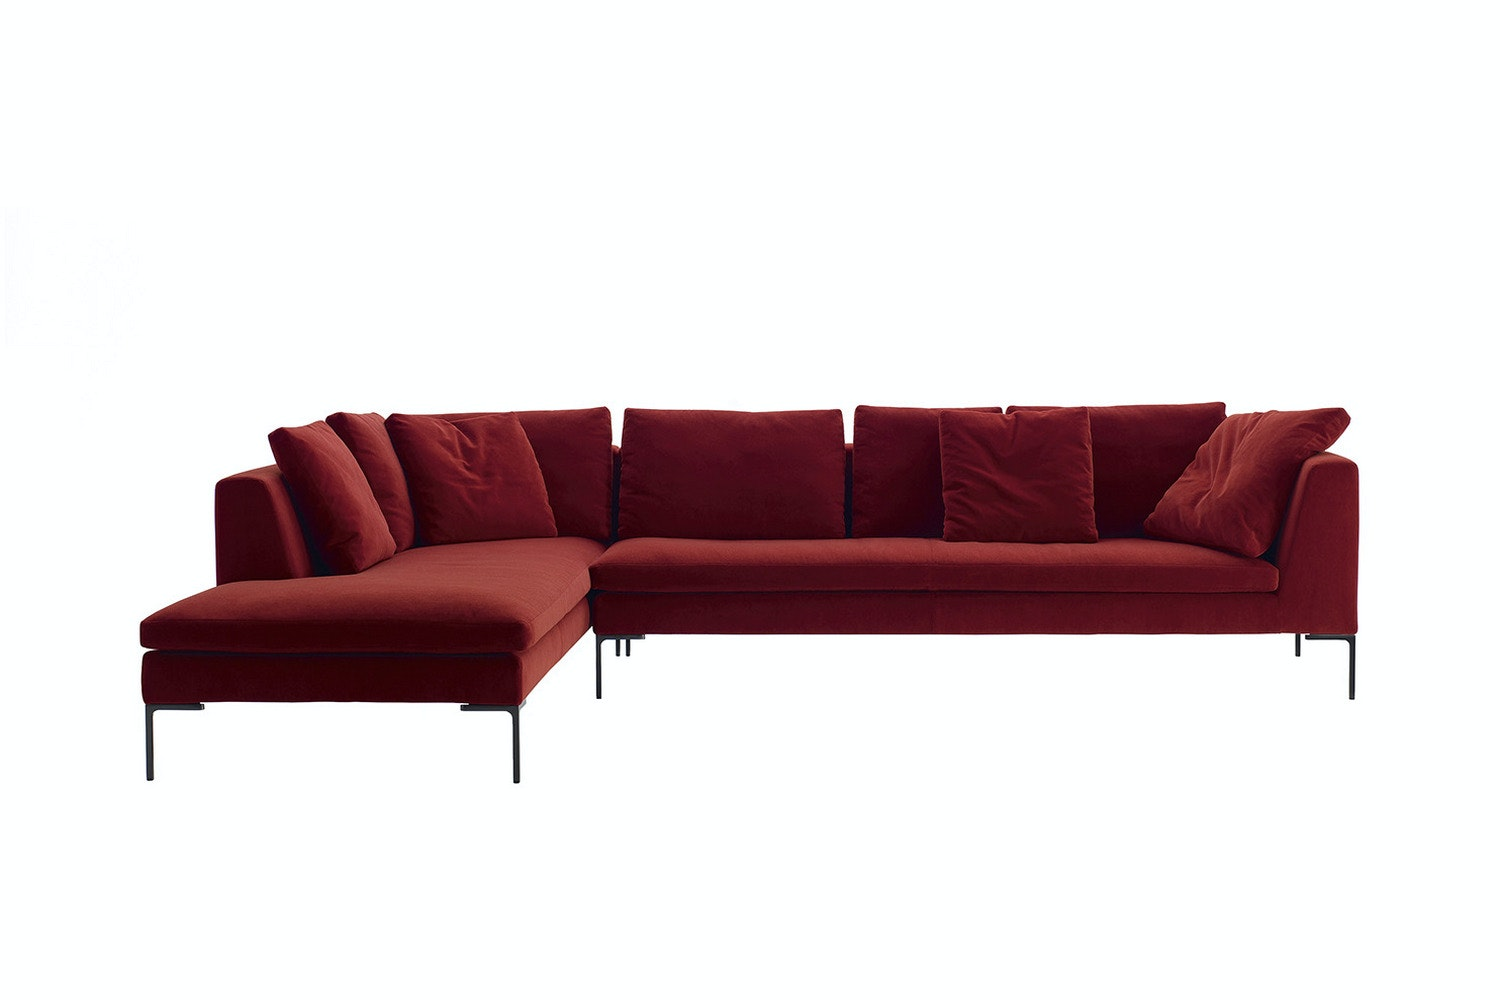 Charles Sofa with Left Chaise - Fabric by Antonio Citterio for B&B Italia